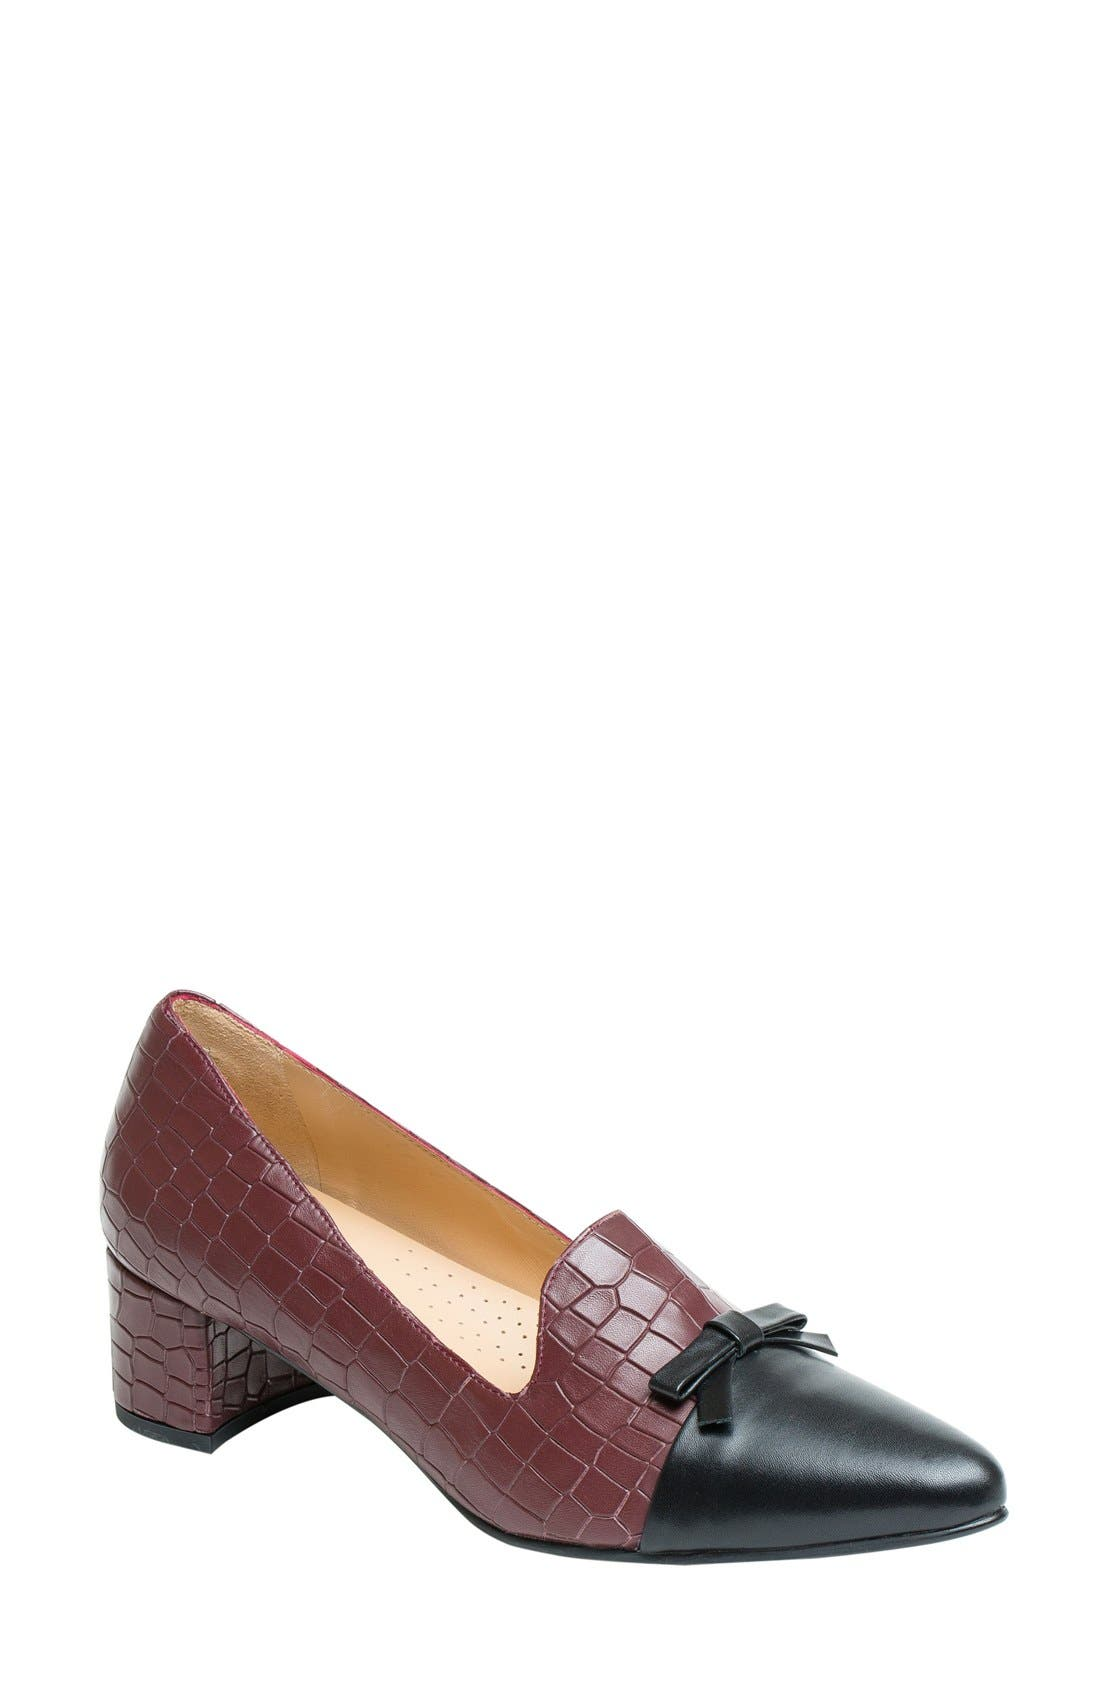 Paloma Loafer Pump,                         Main,                         color, Burgundy Leather